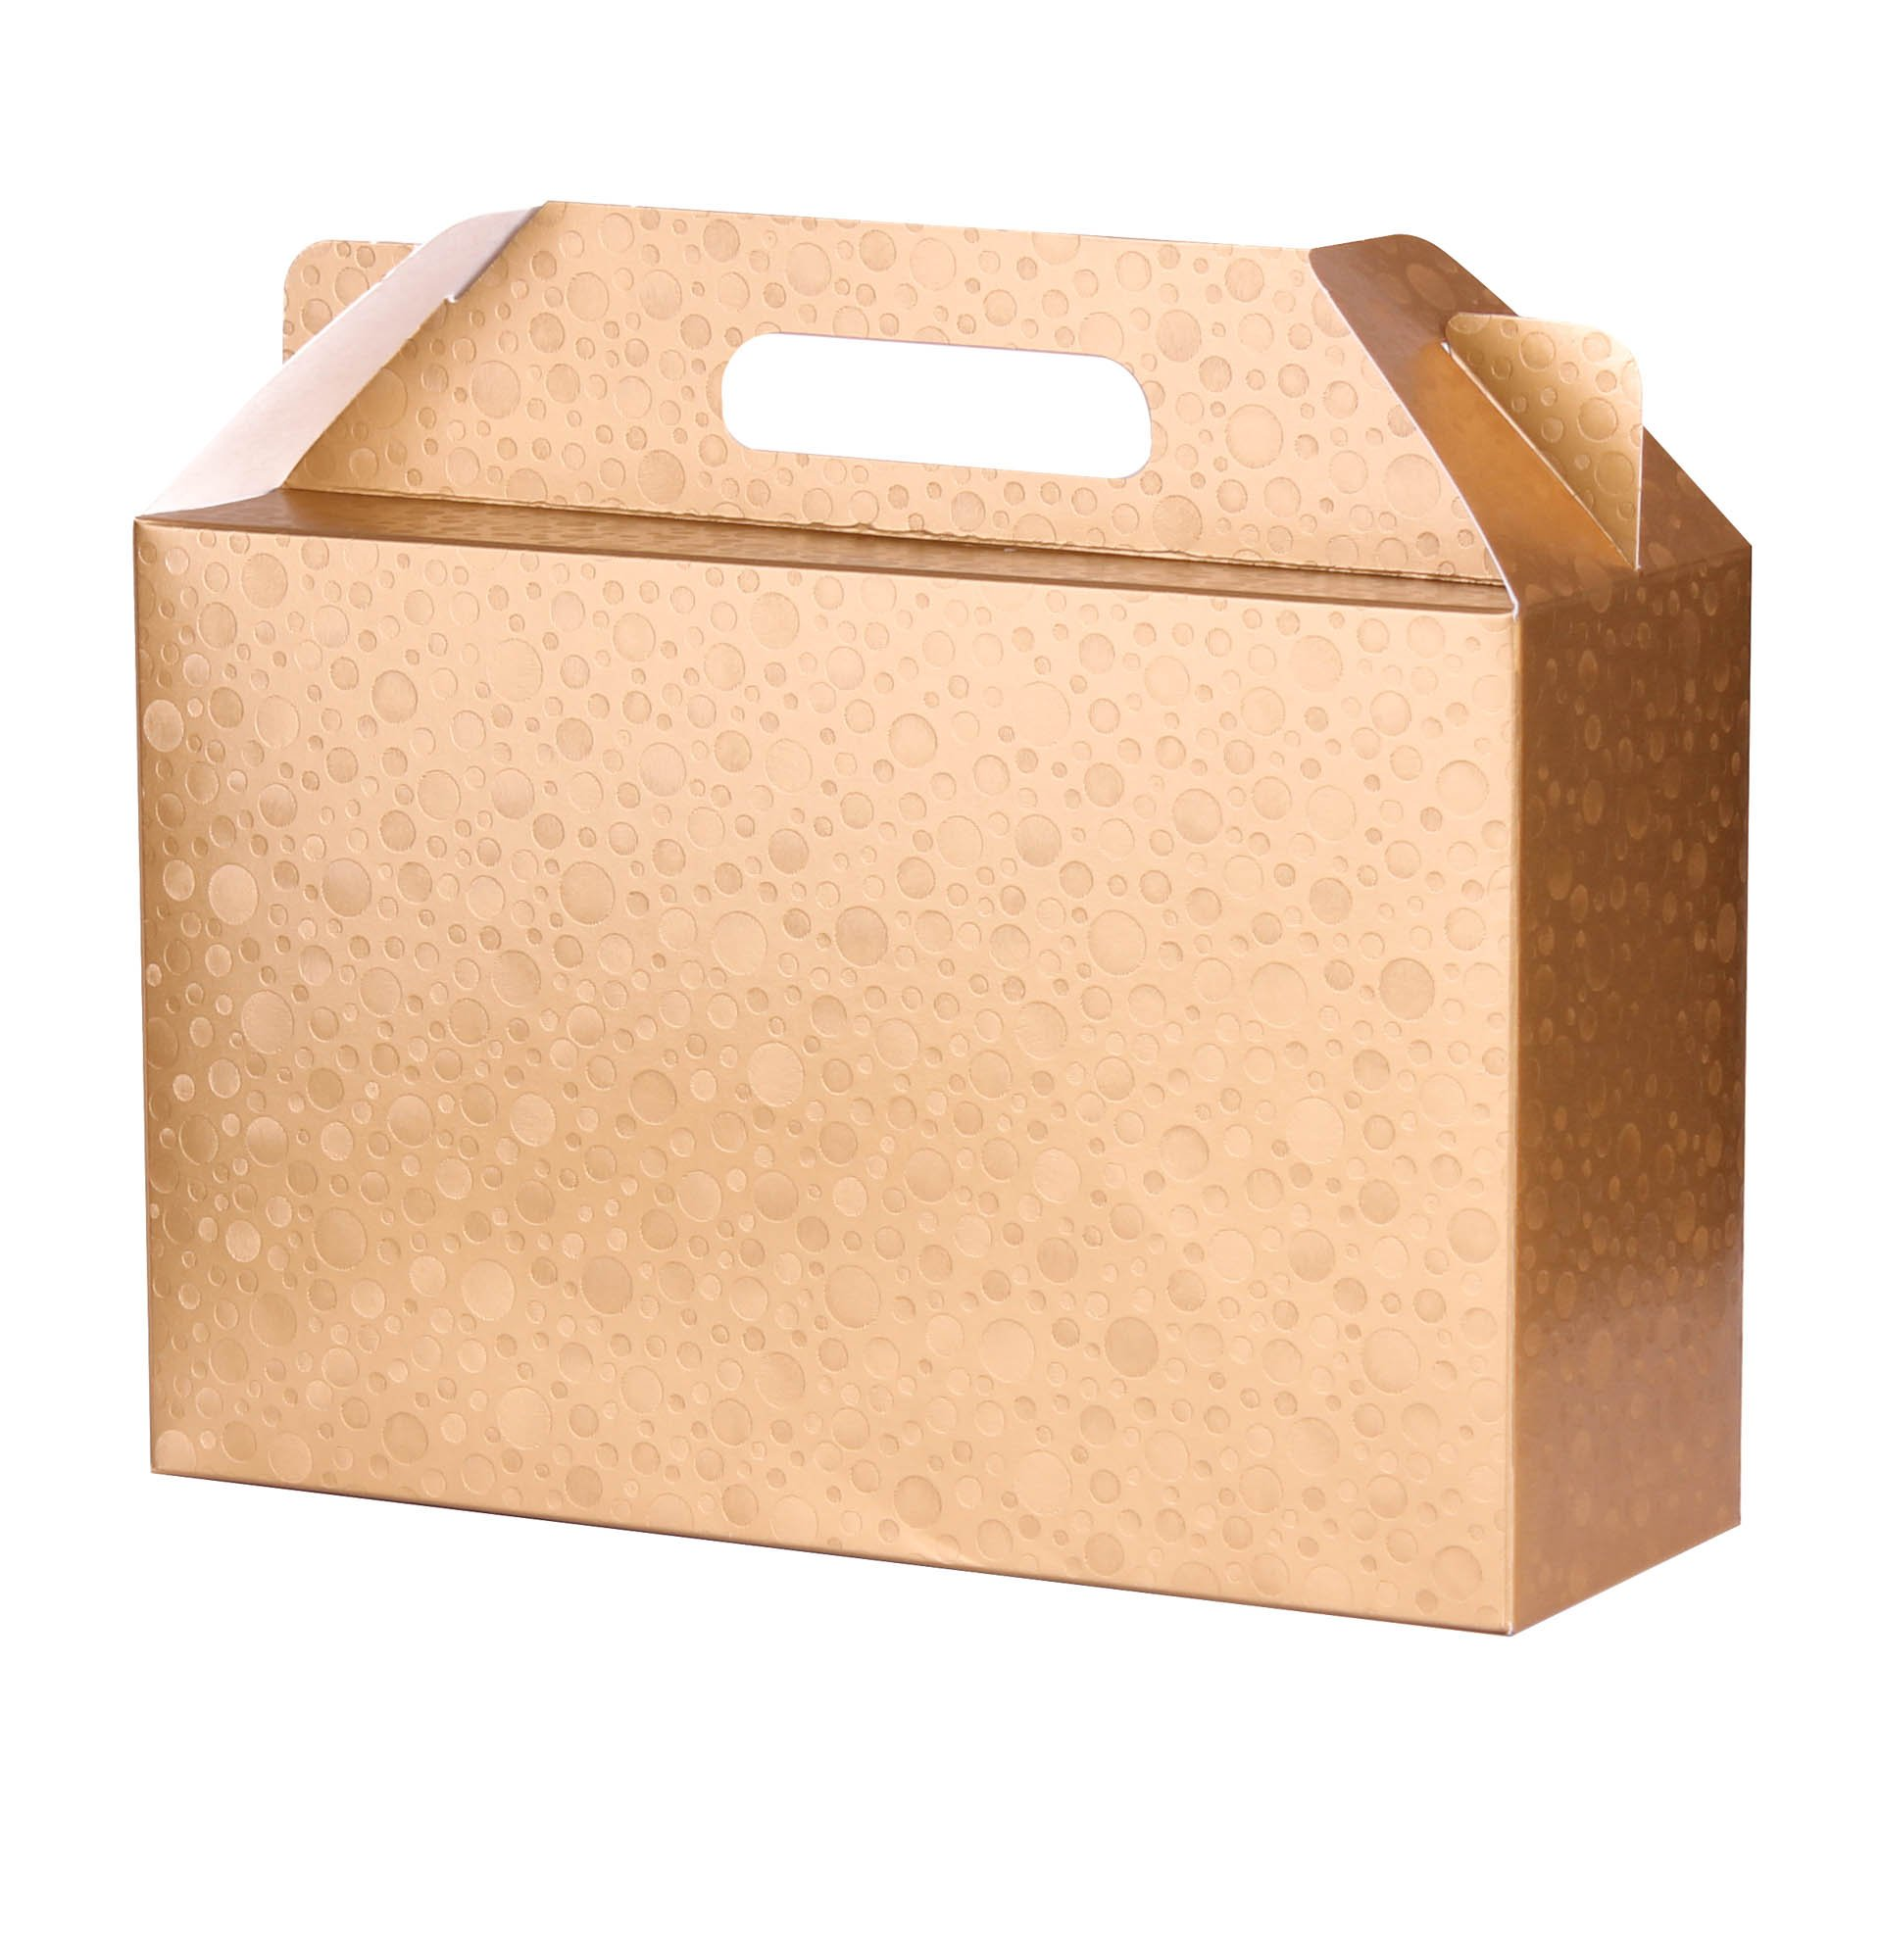 Decorative Gold Craft Cardboard Gift Boxes Set of 6 with Lids and Handle 11x7x4 in for different Occasions like Holiday Wedding Birthday Christmas bridesmaid party Free: TOP TIPS around Gift Giving